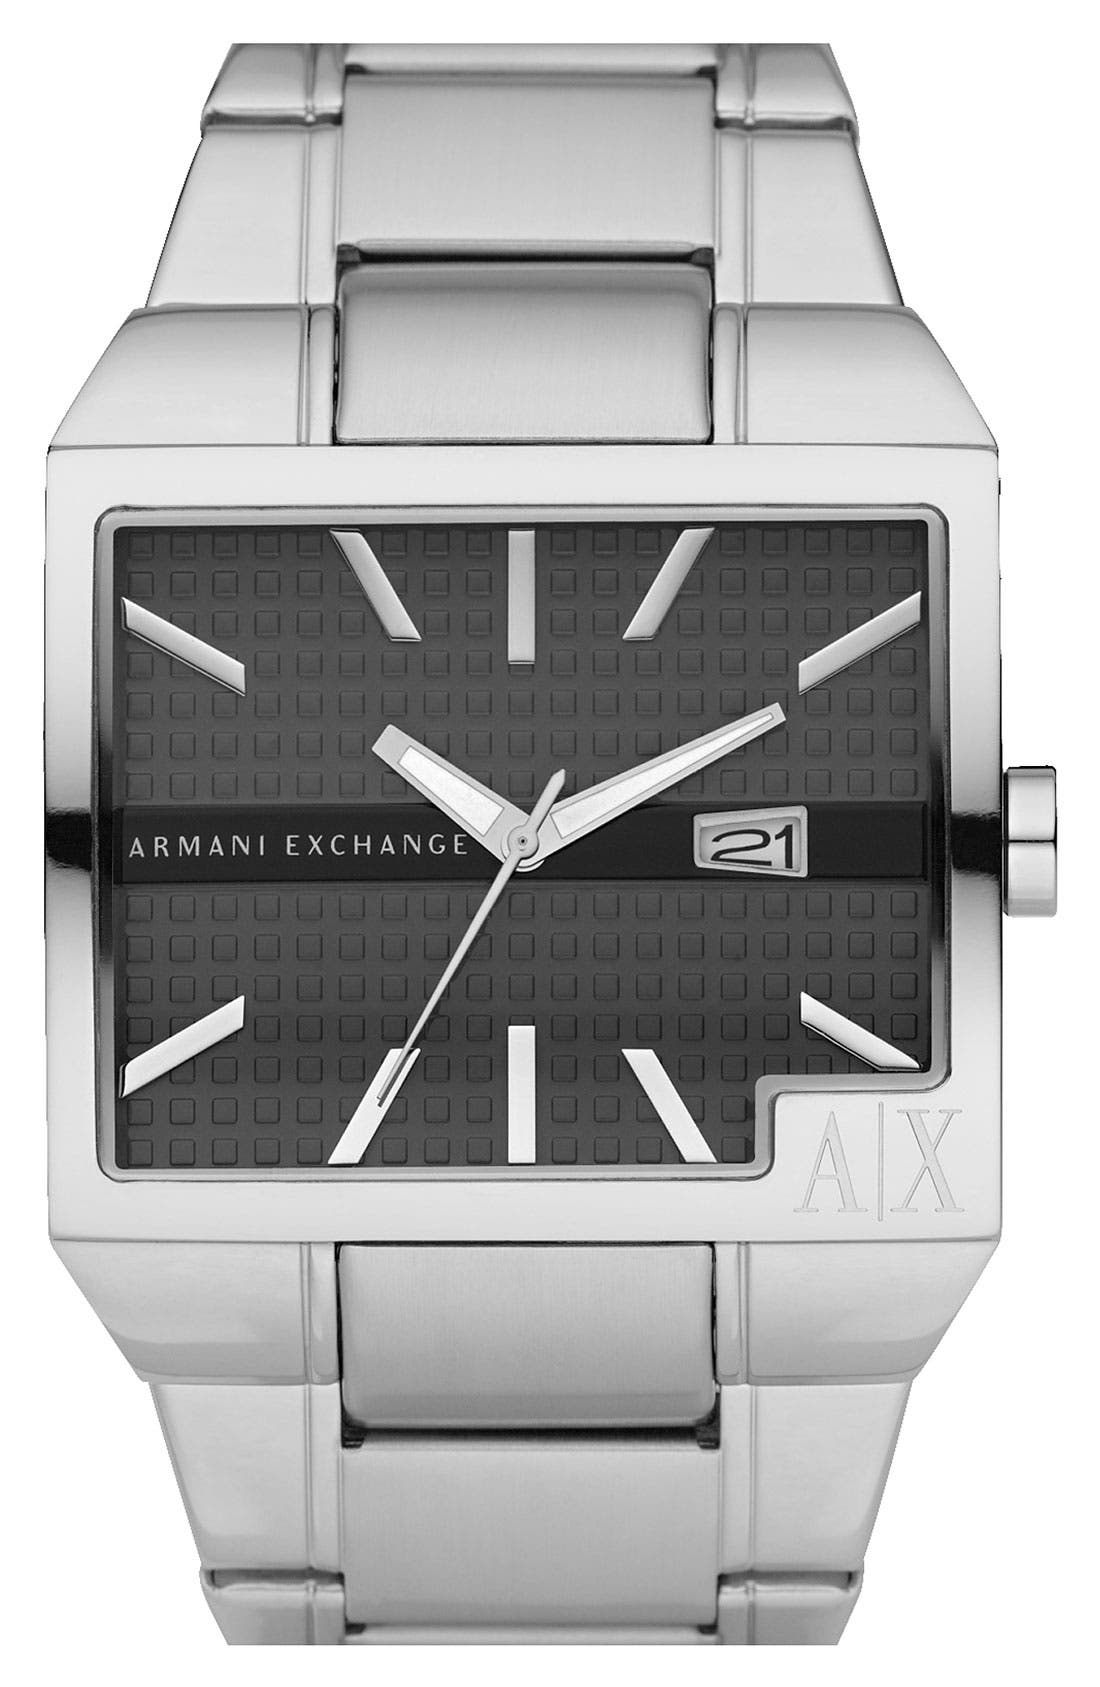 Alternate Image 1 Selected - AX Armani Exchange Men's Wide Rectangular Watch, 43mm x 36mm